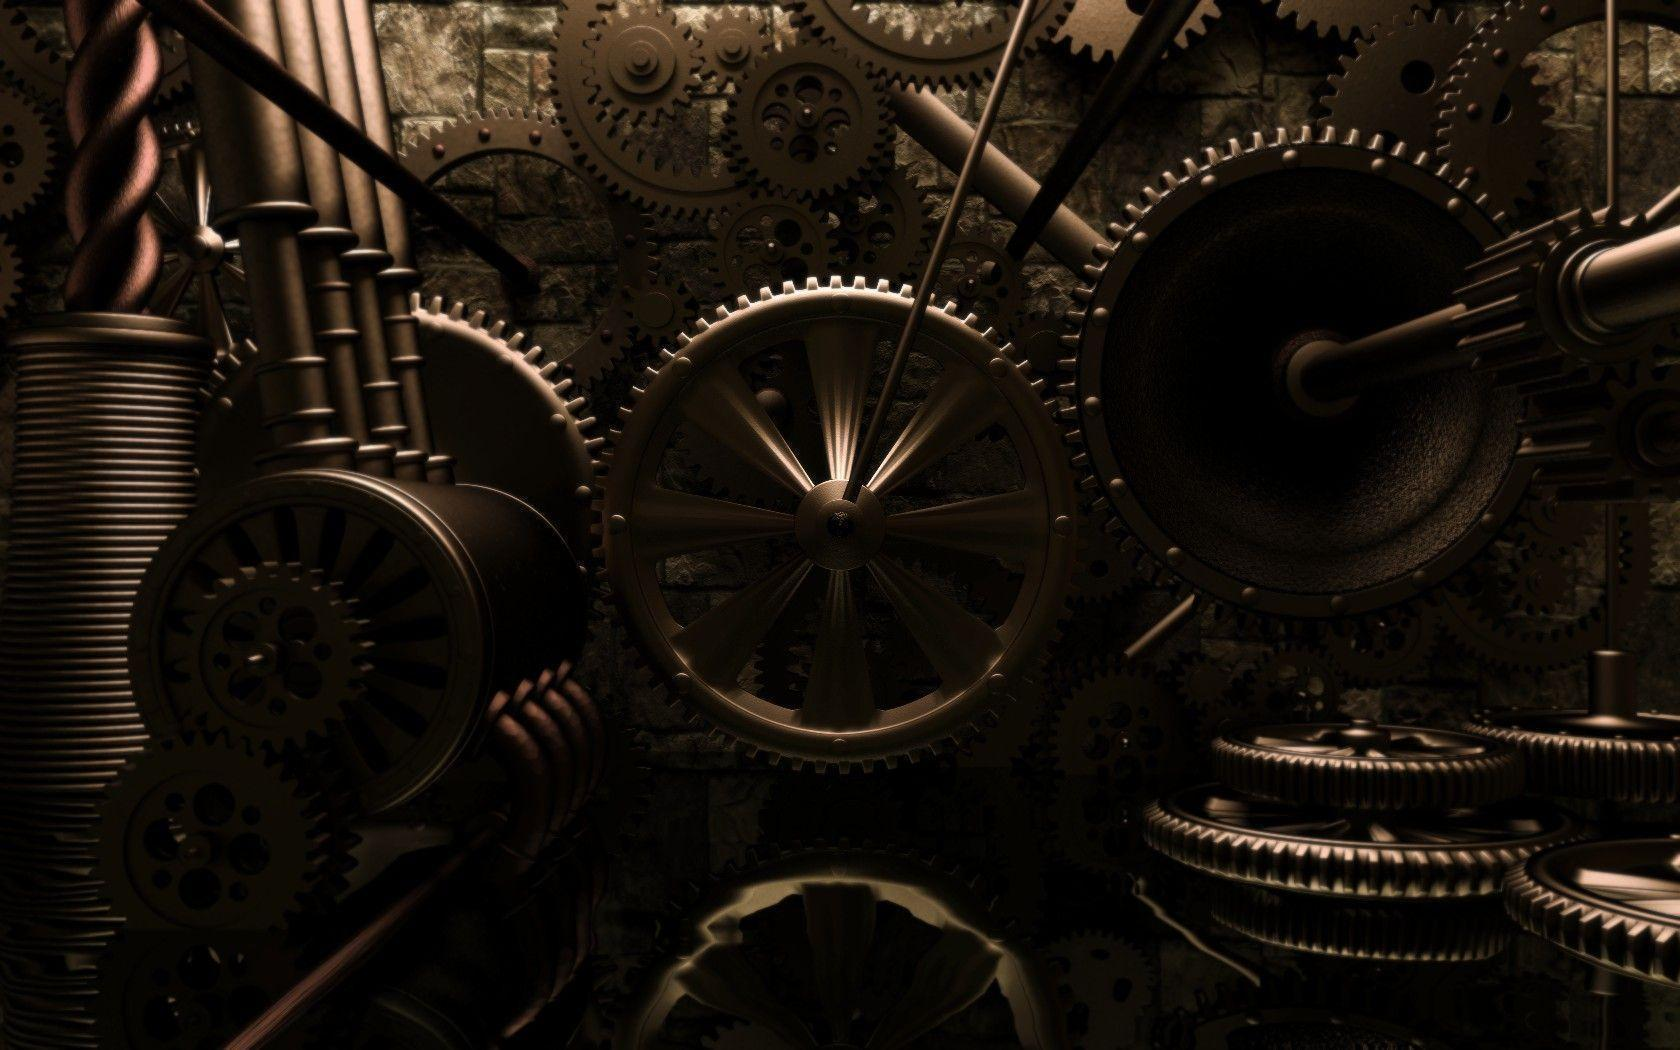 Steampunk Desktop Backgrounds Wallpaper Cave